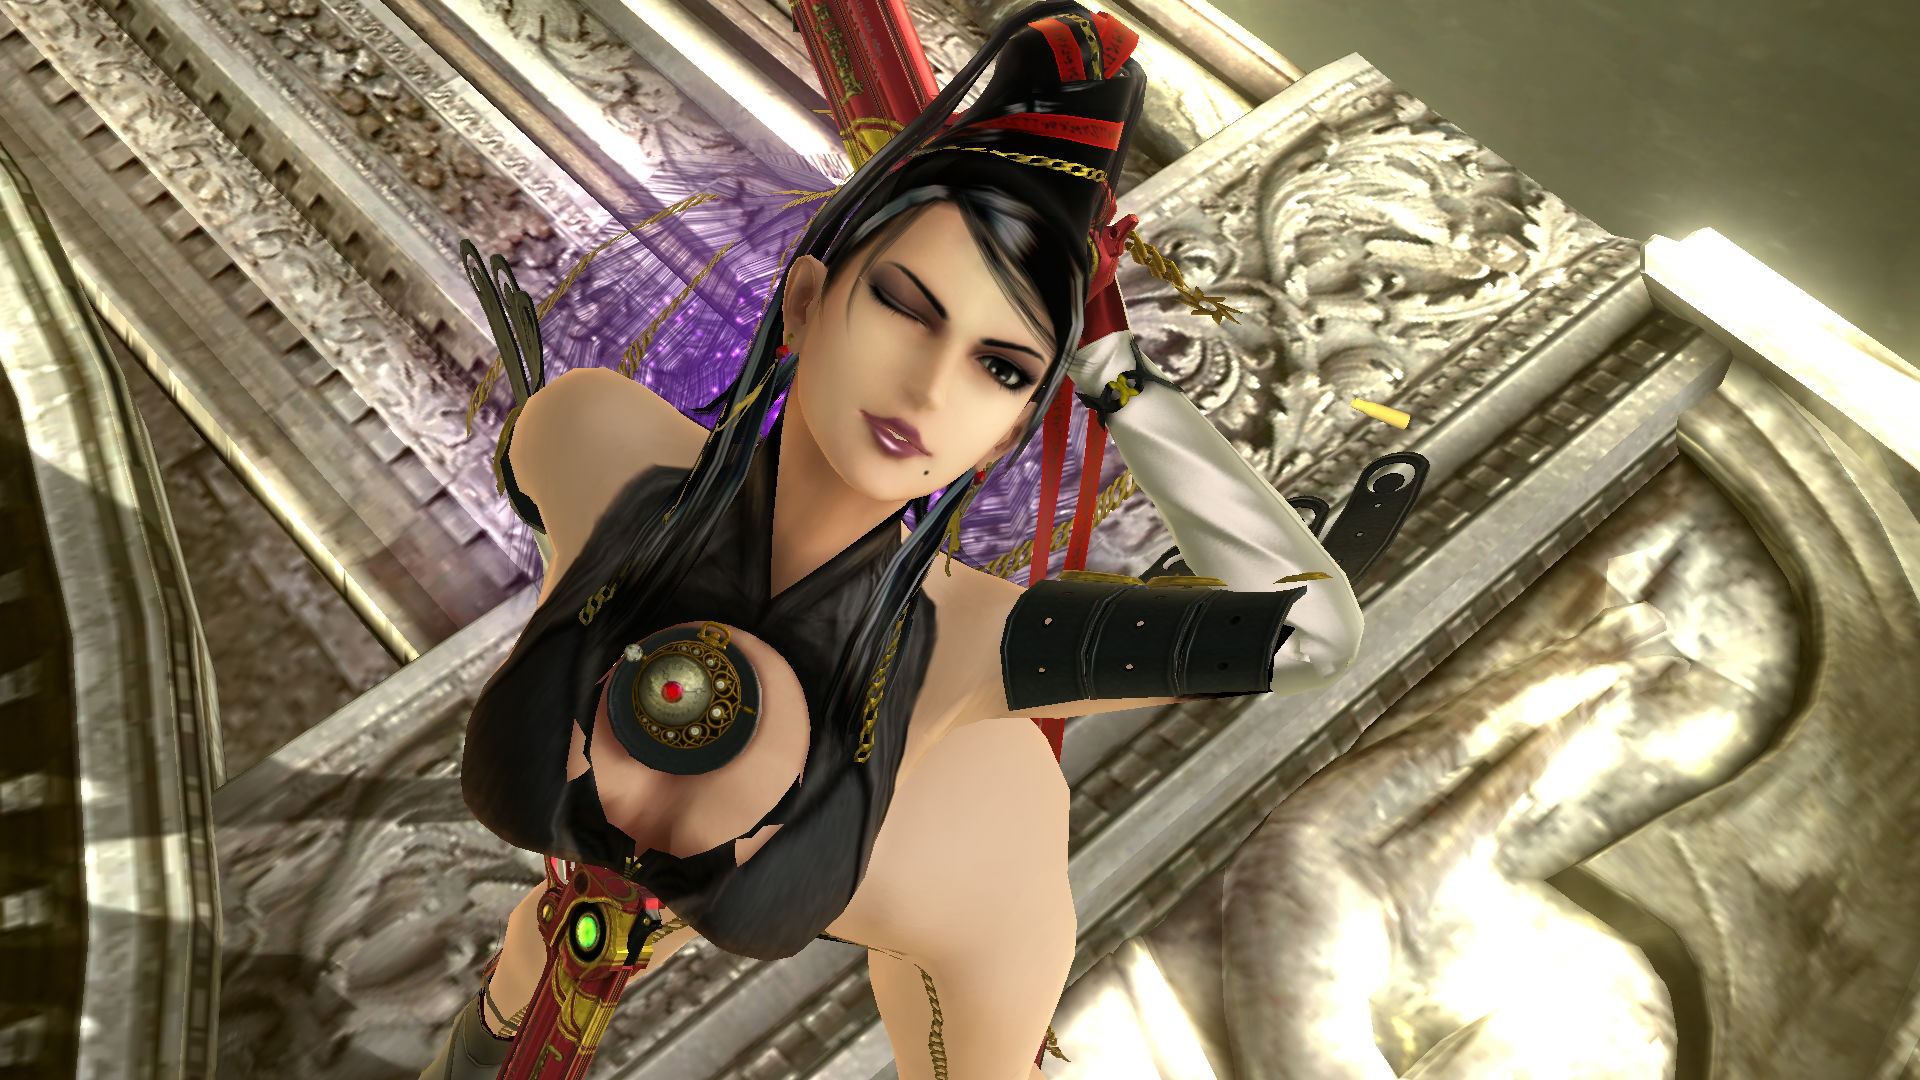 1920x1080 Removed Glasses/Thicc/Uncensored Bayonetta ...